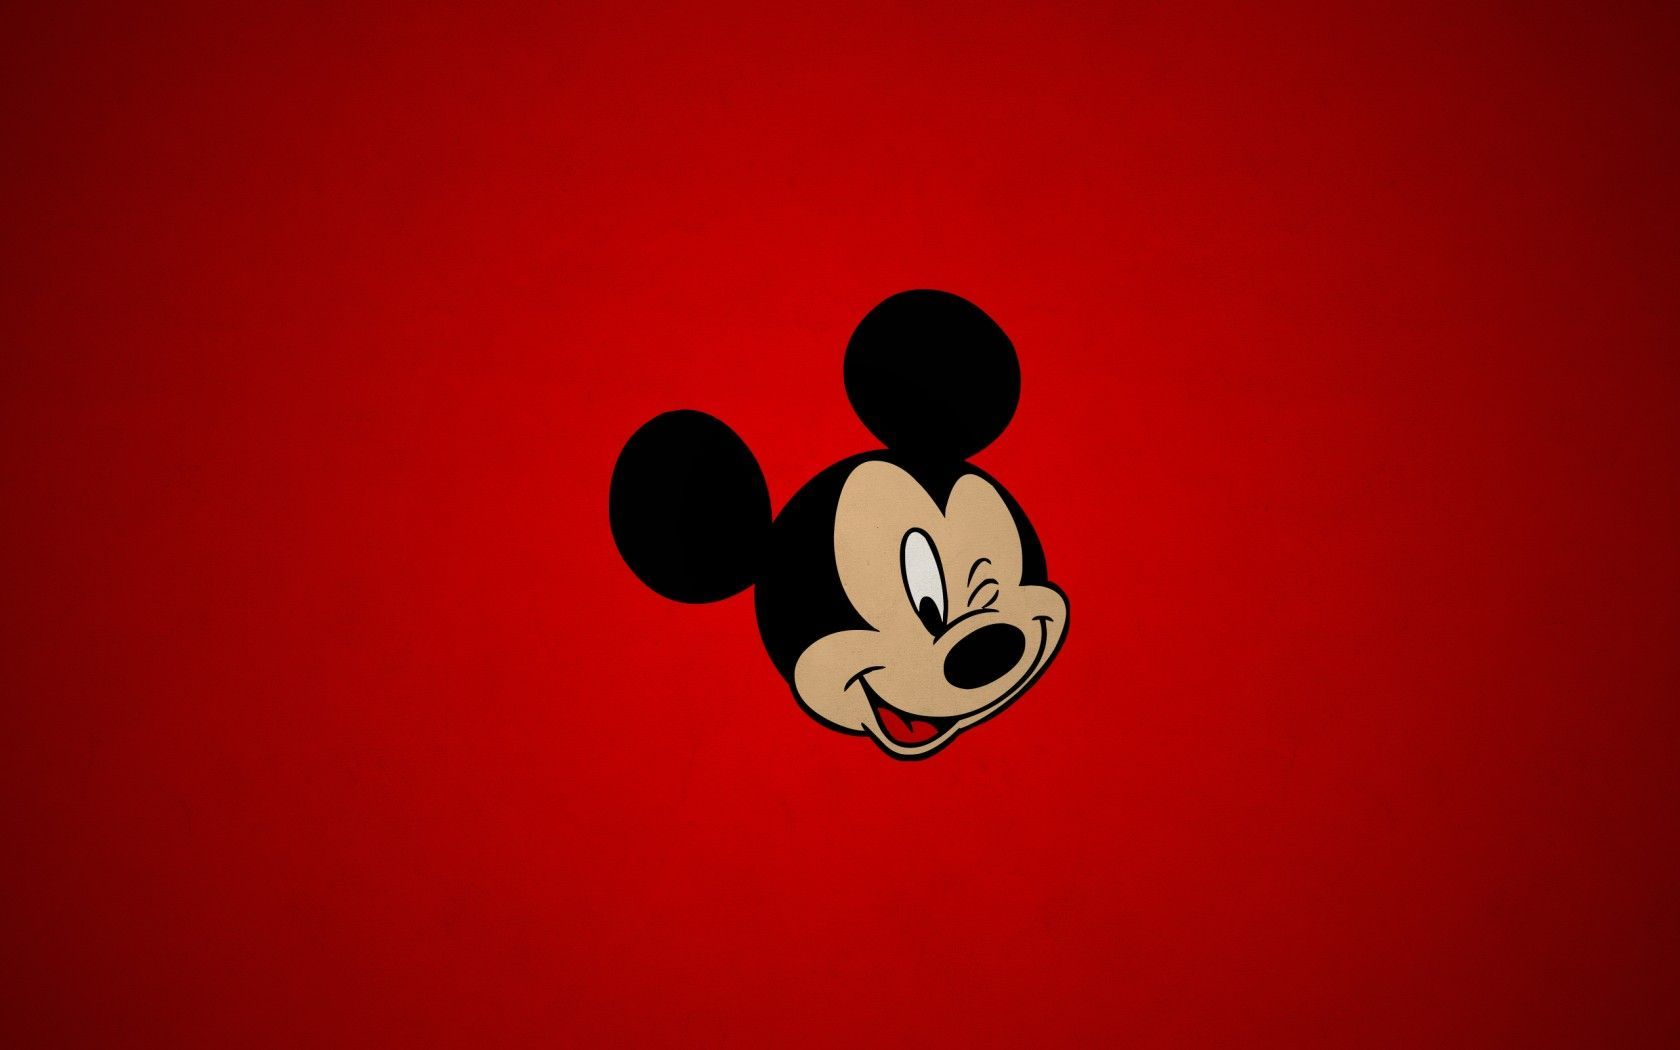 Pin By Sandra Schmidt On Mickey Friends Pinterest Mickey Mouse